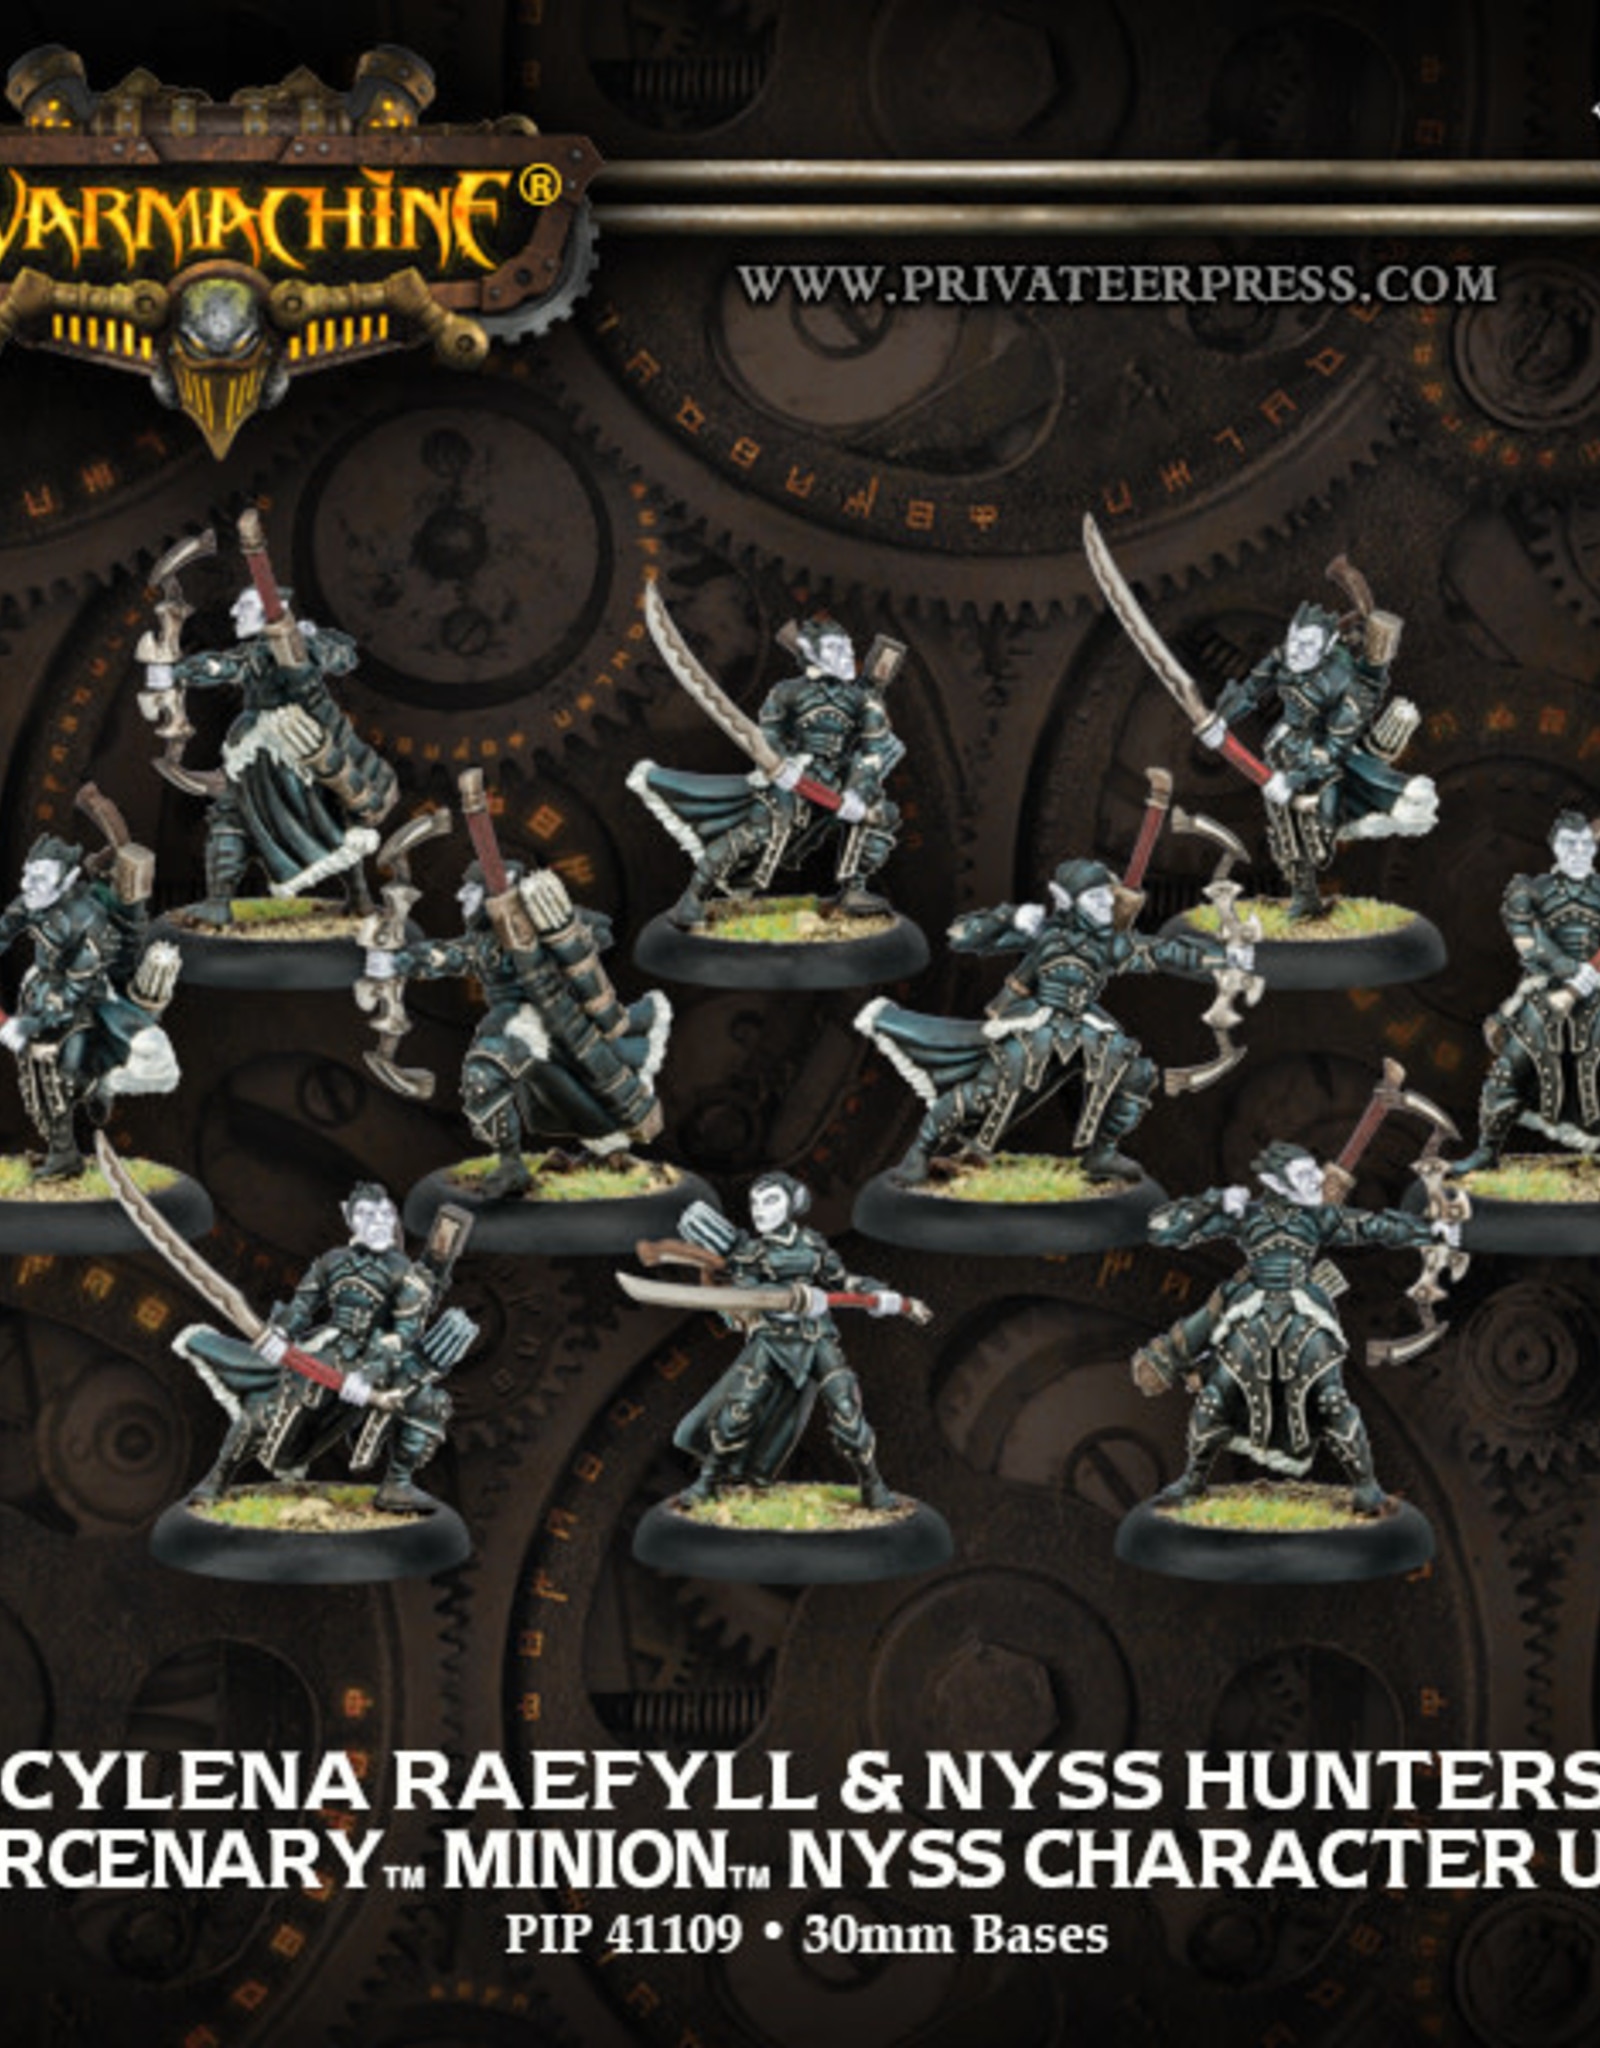 Warmachine Mercenaries -Cylena Raefyll & Nyss Hunters